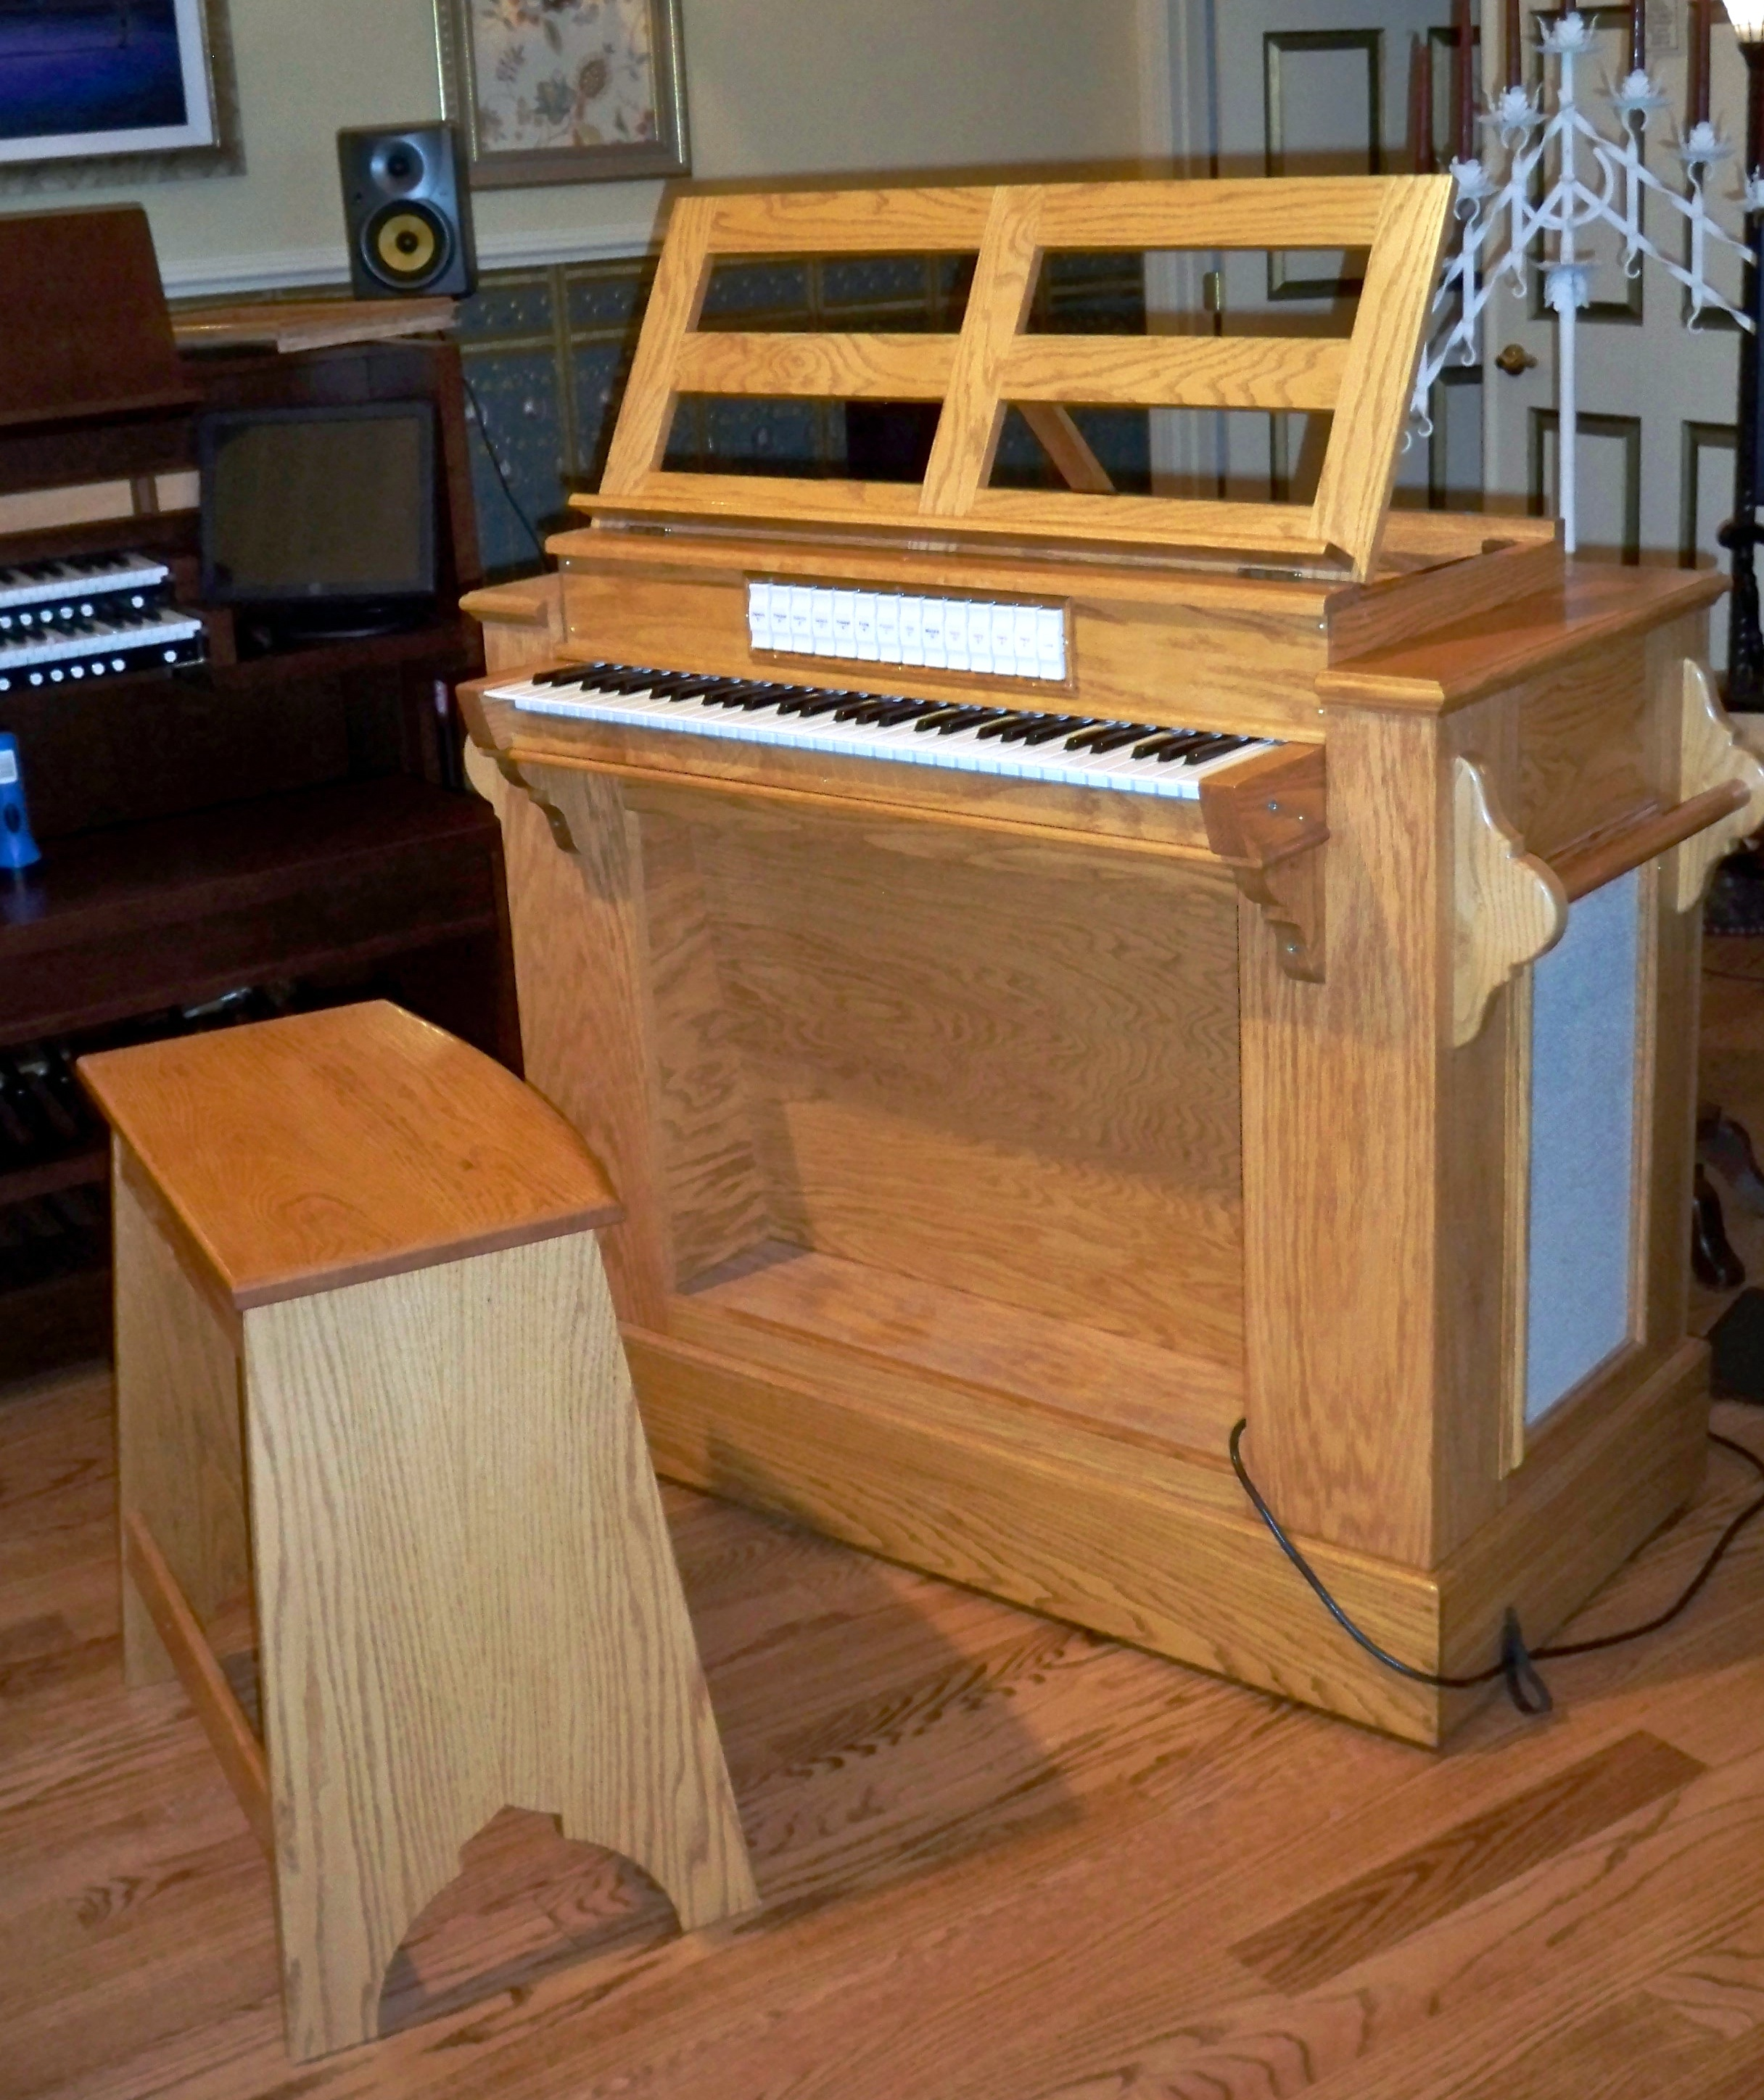 Continuo instrument with Organ and Harpsichord